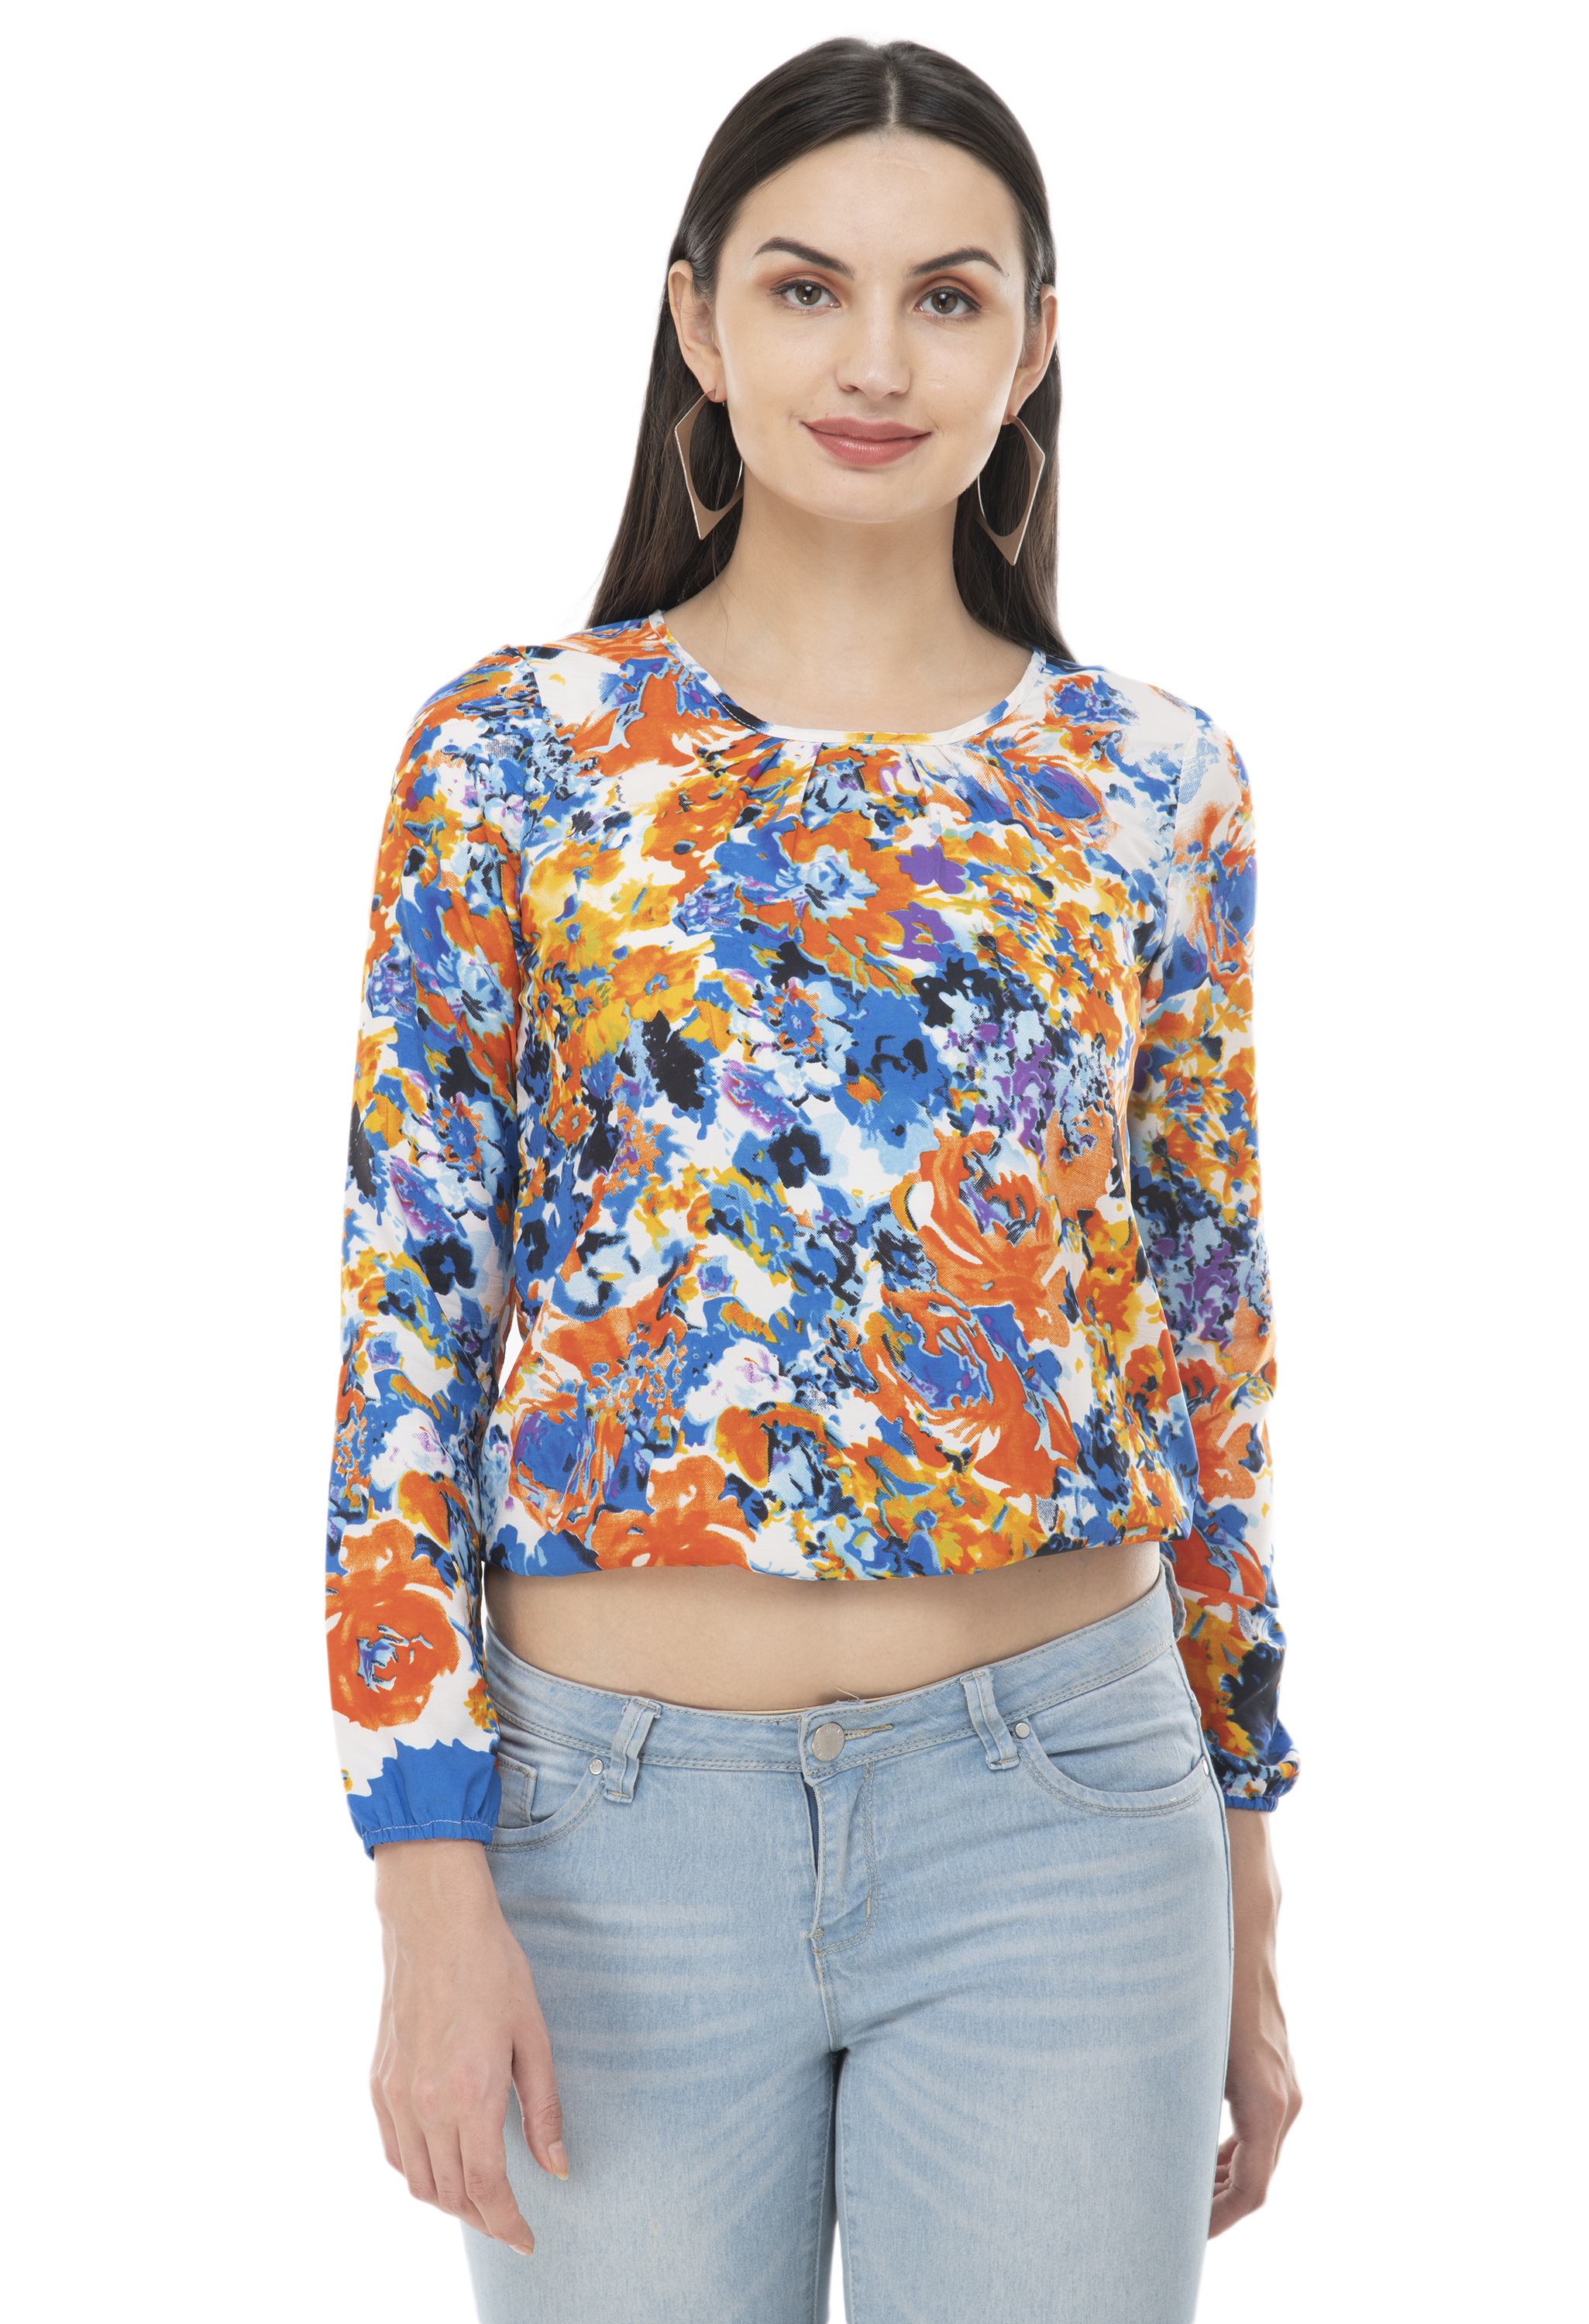 Fairiano Women Casual Full Sleeve Orange Printed Multi Color's Top